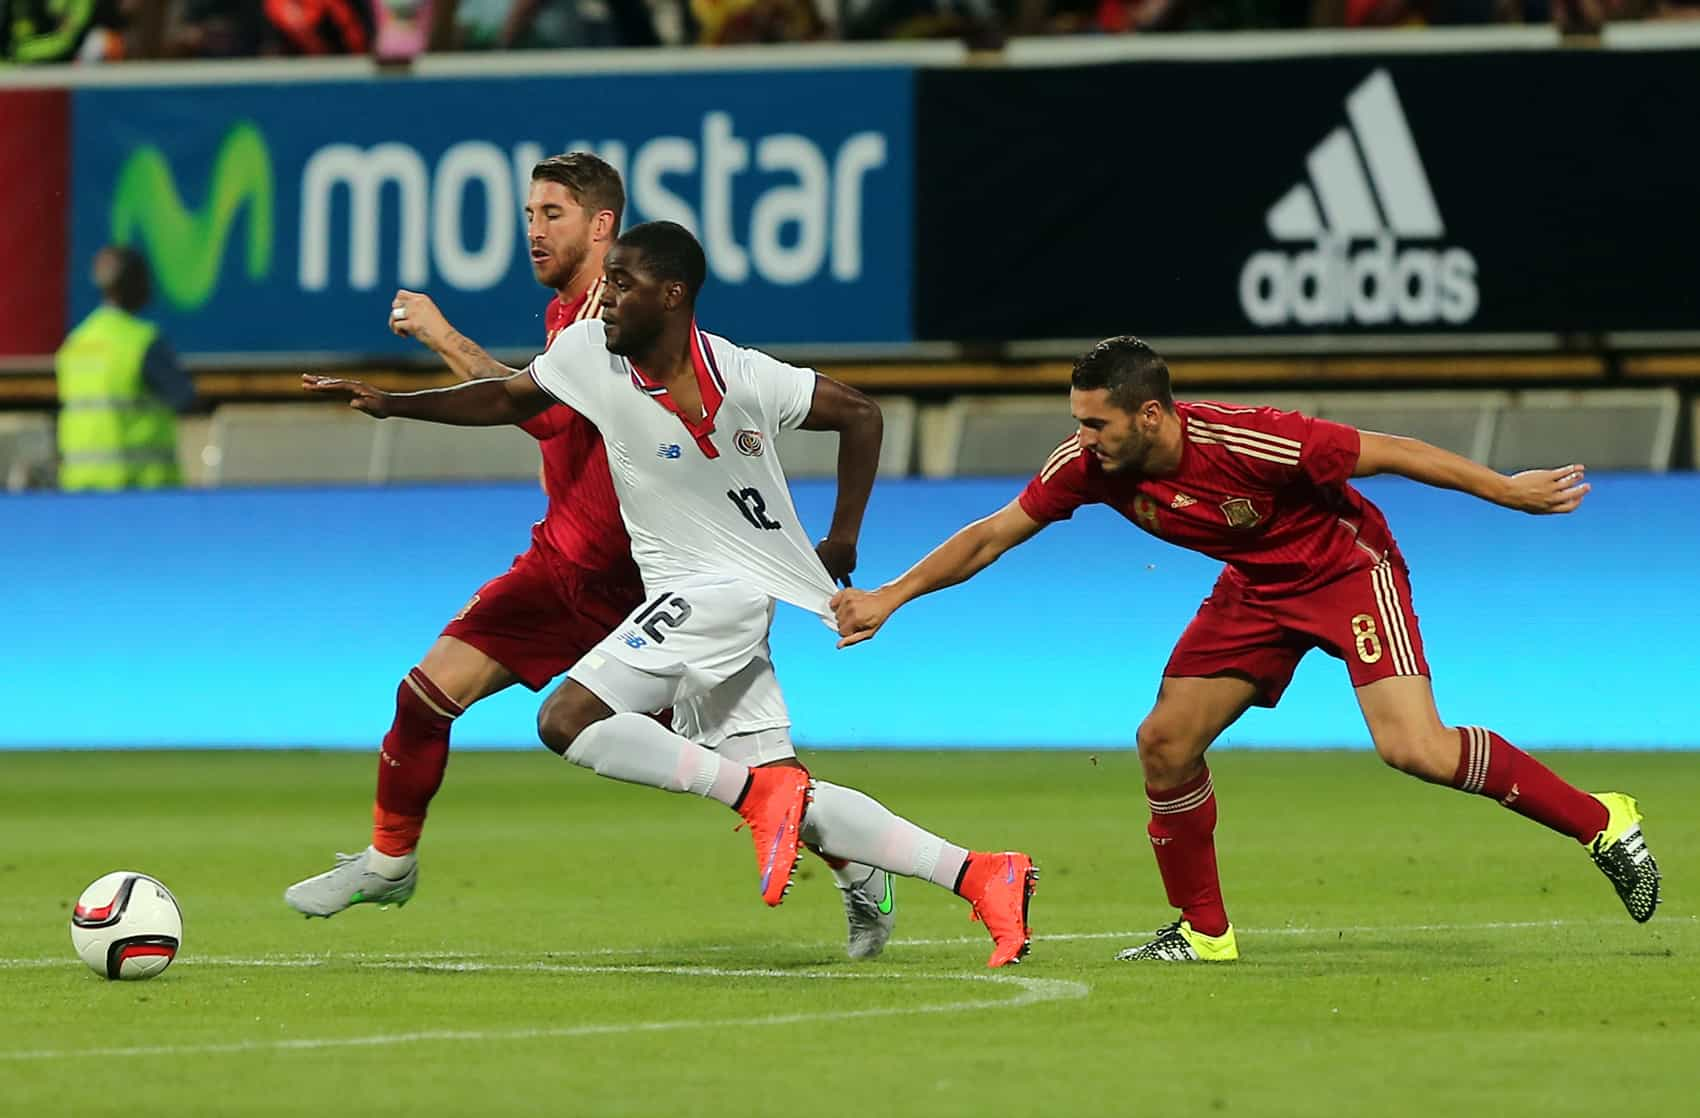 Costa Rica's forward Joel Campbell (center) vies with Spain's midfielder Koke (right) and Spain's defender Sergio Ramos during the friendly match at the Reino de León stadium in León, Spain on June 11, 2015.